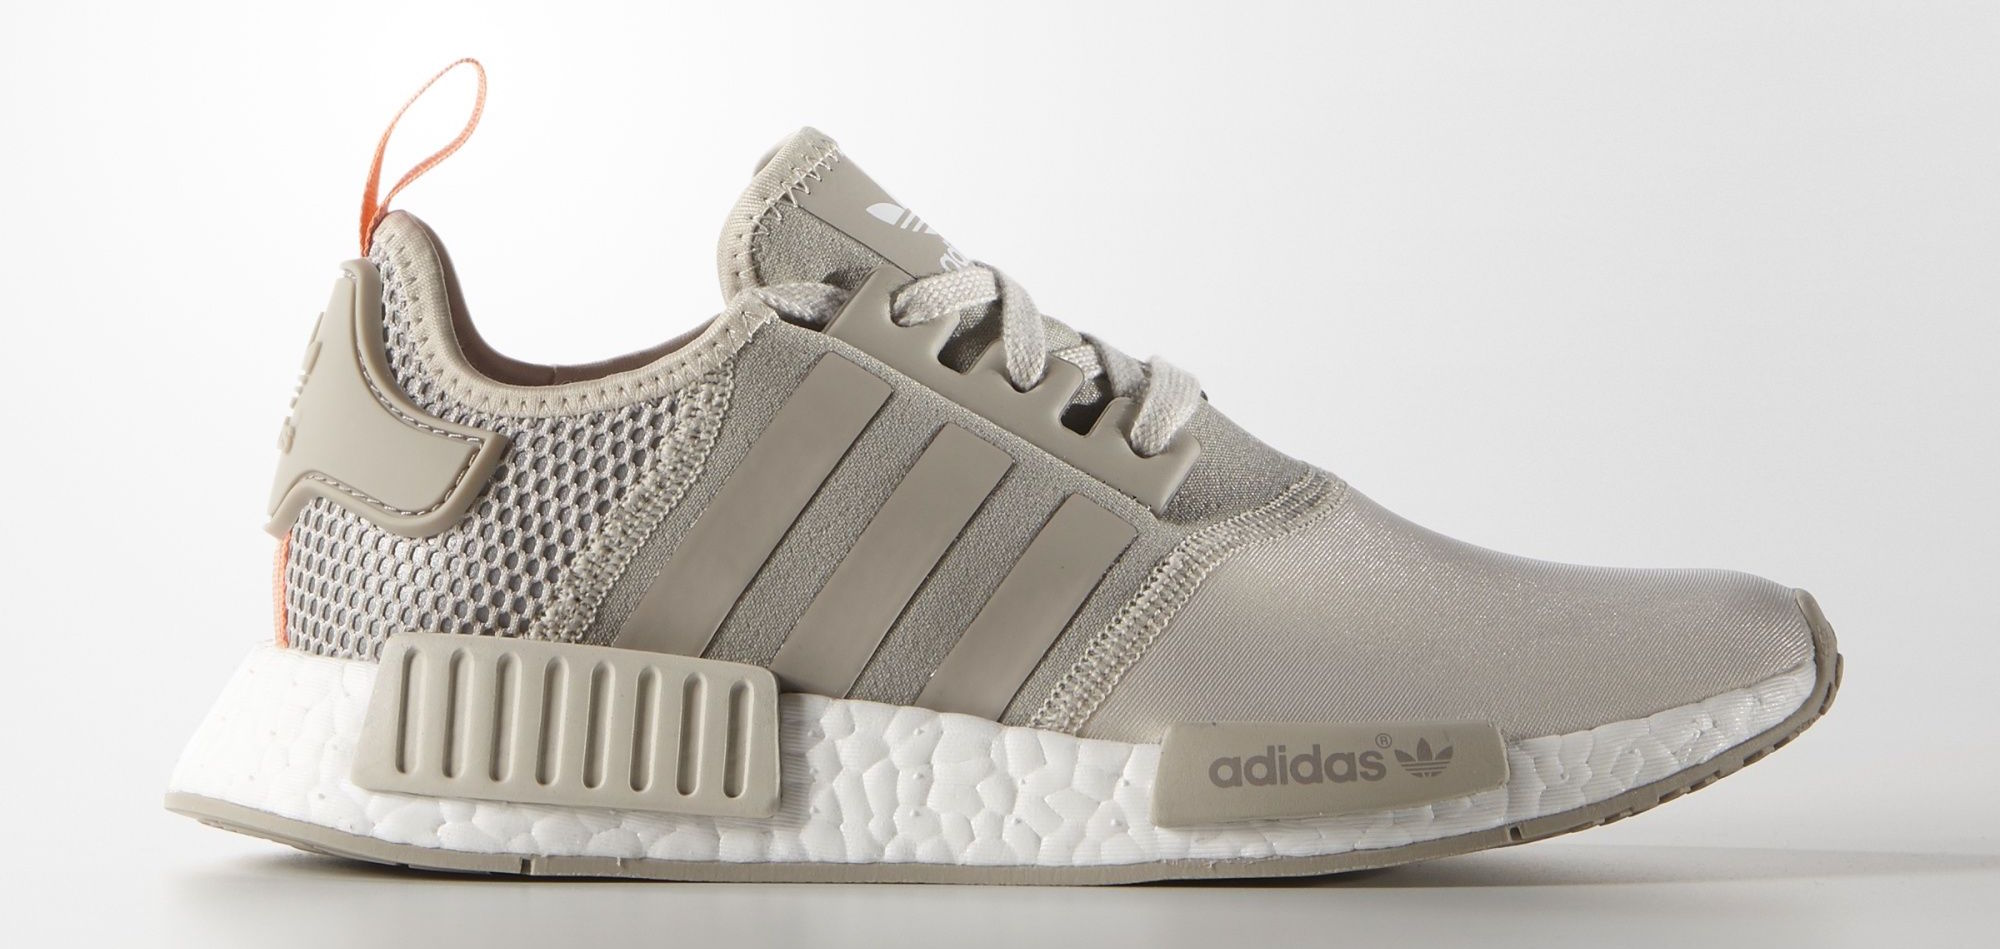 various colors 11d96 bdae7 The adidas NMD R1 Runner is Available in Multiple Colorways ...